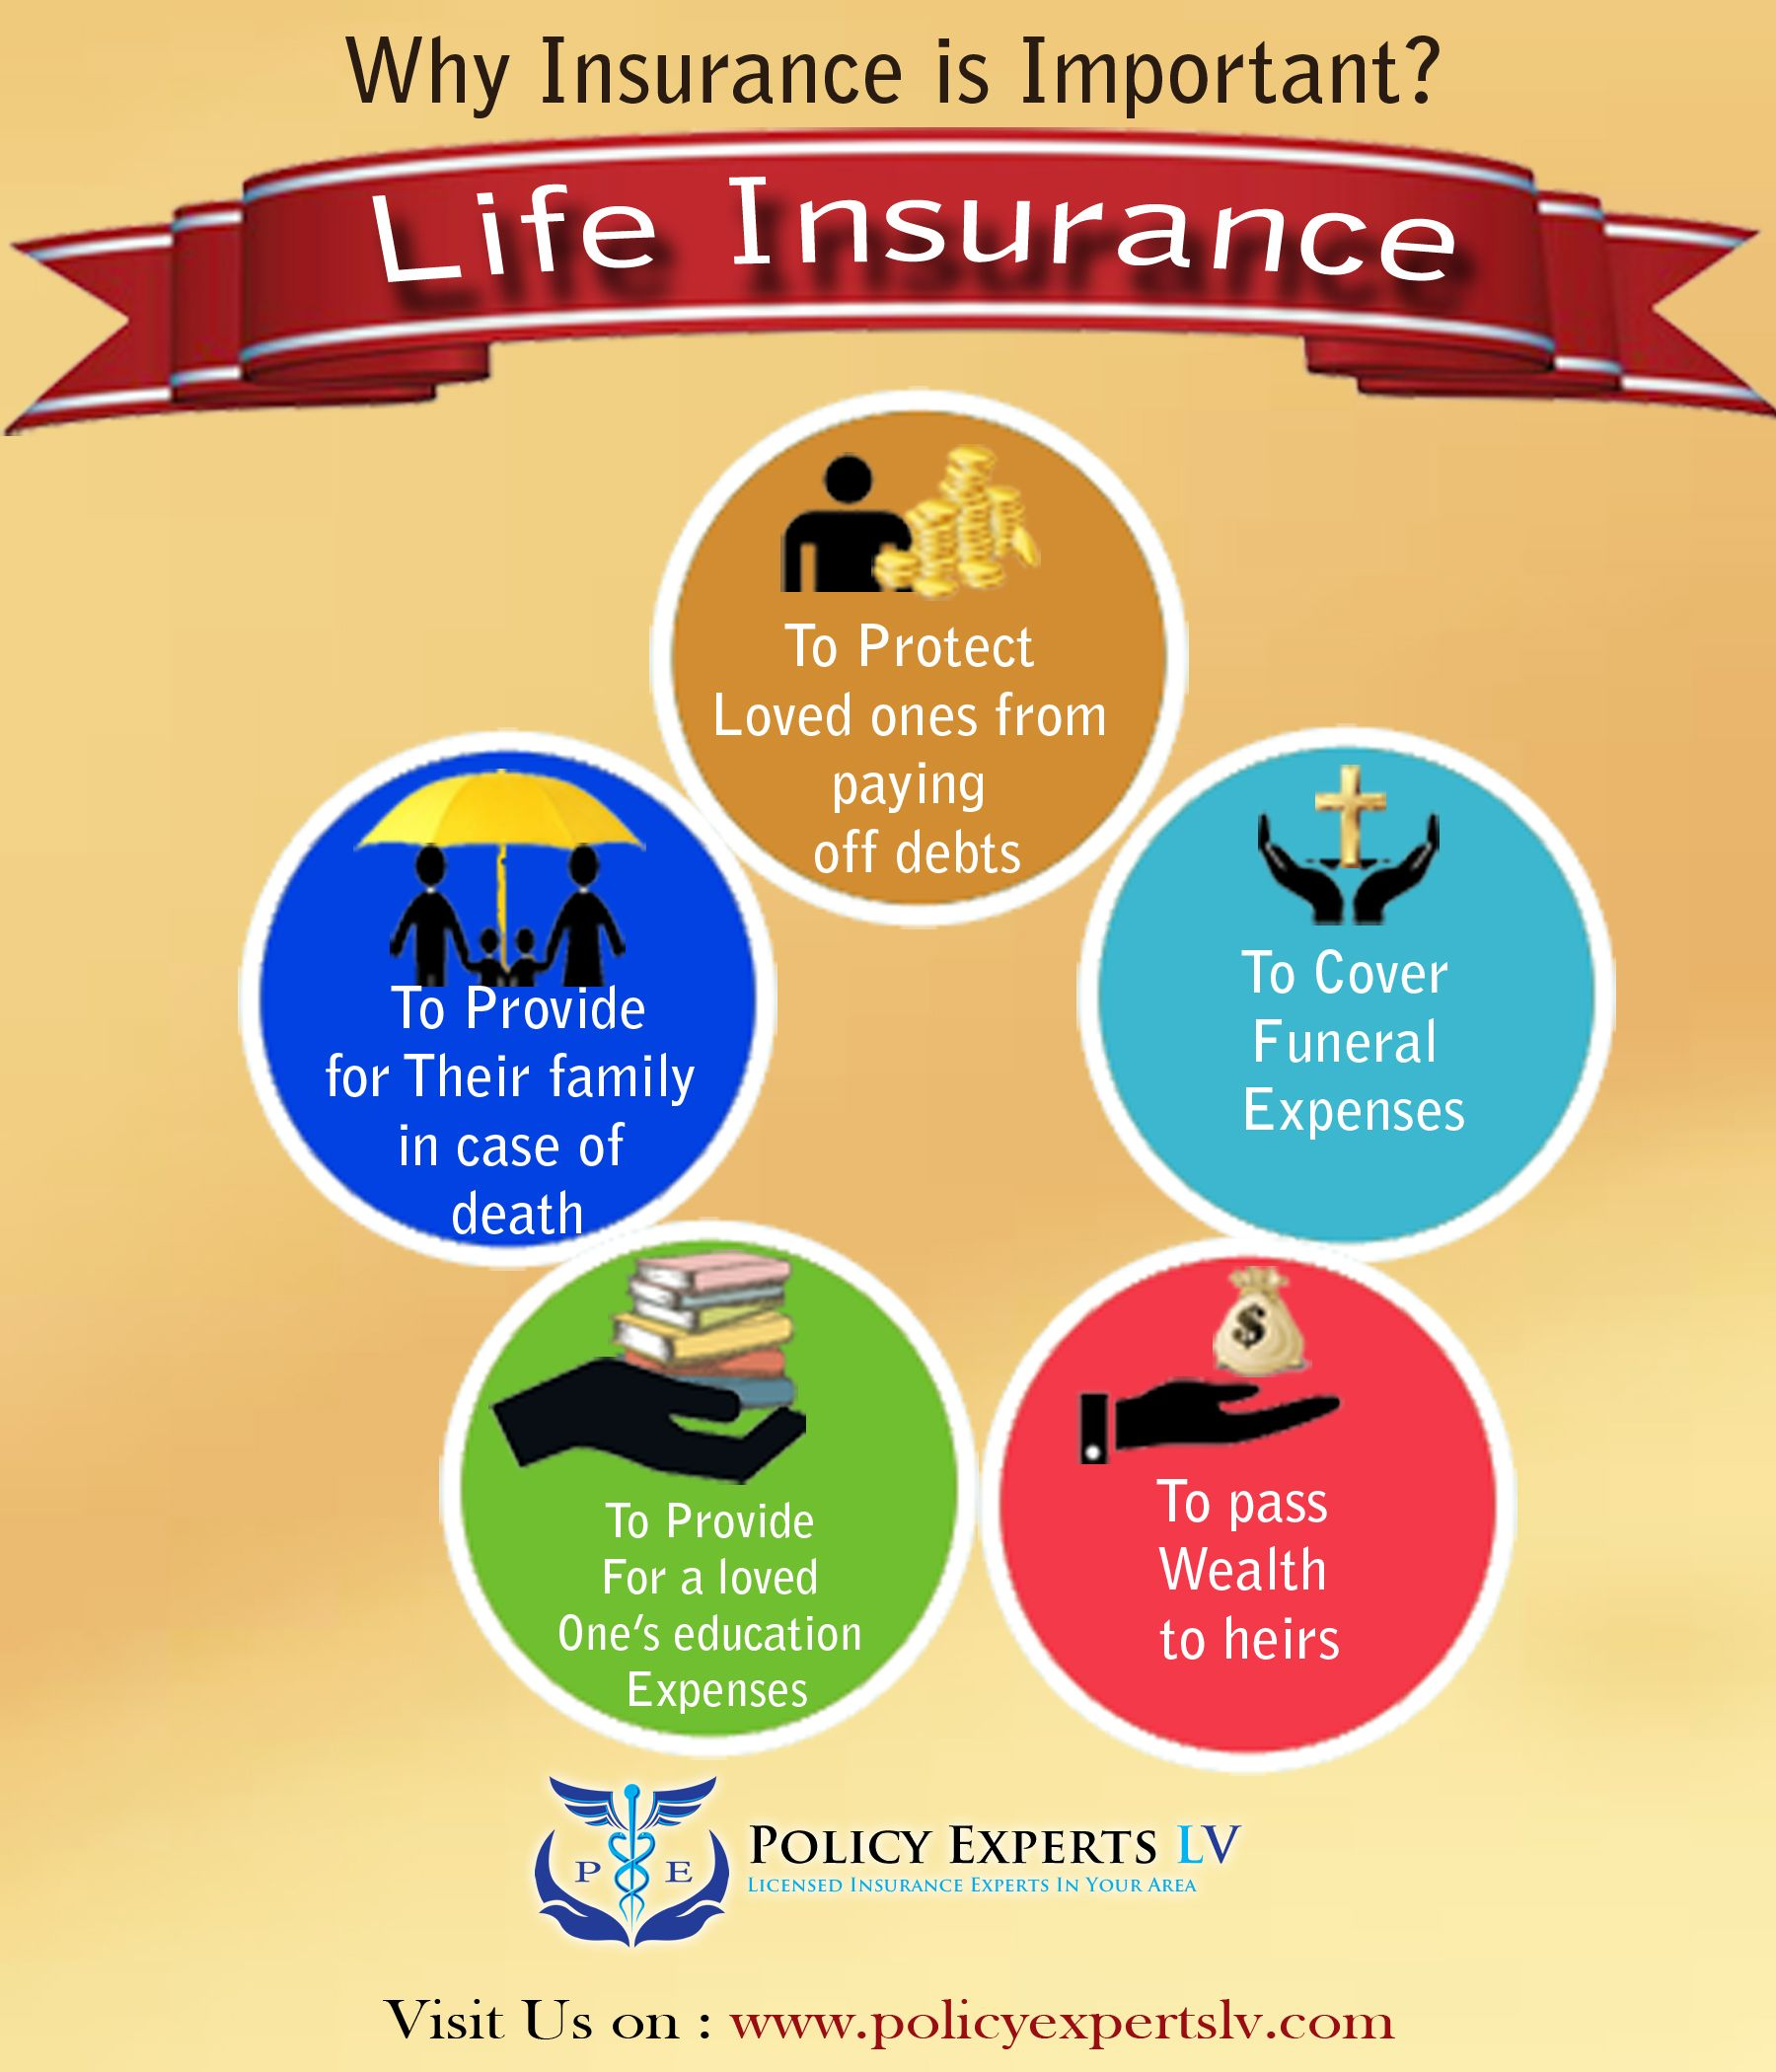 Policy Experts Takes Pride In Educating Our Clients In Life Insurance Products That Is Best For The In 2021 Life Insurance Broker Life Insurance Facts Insurance Broker